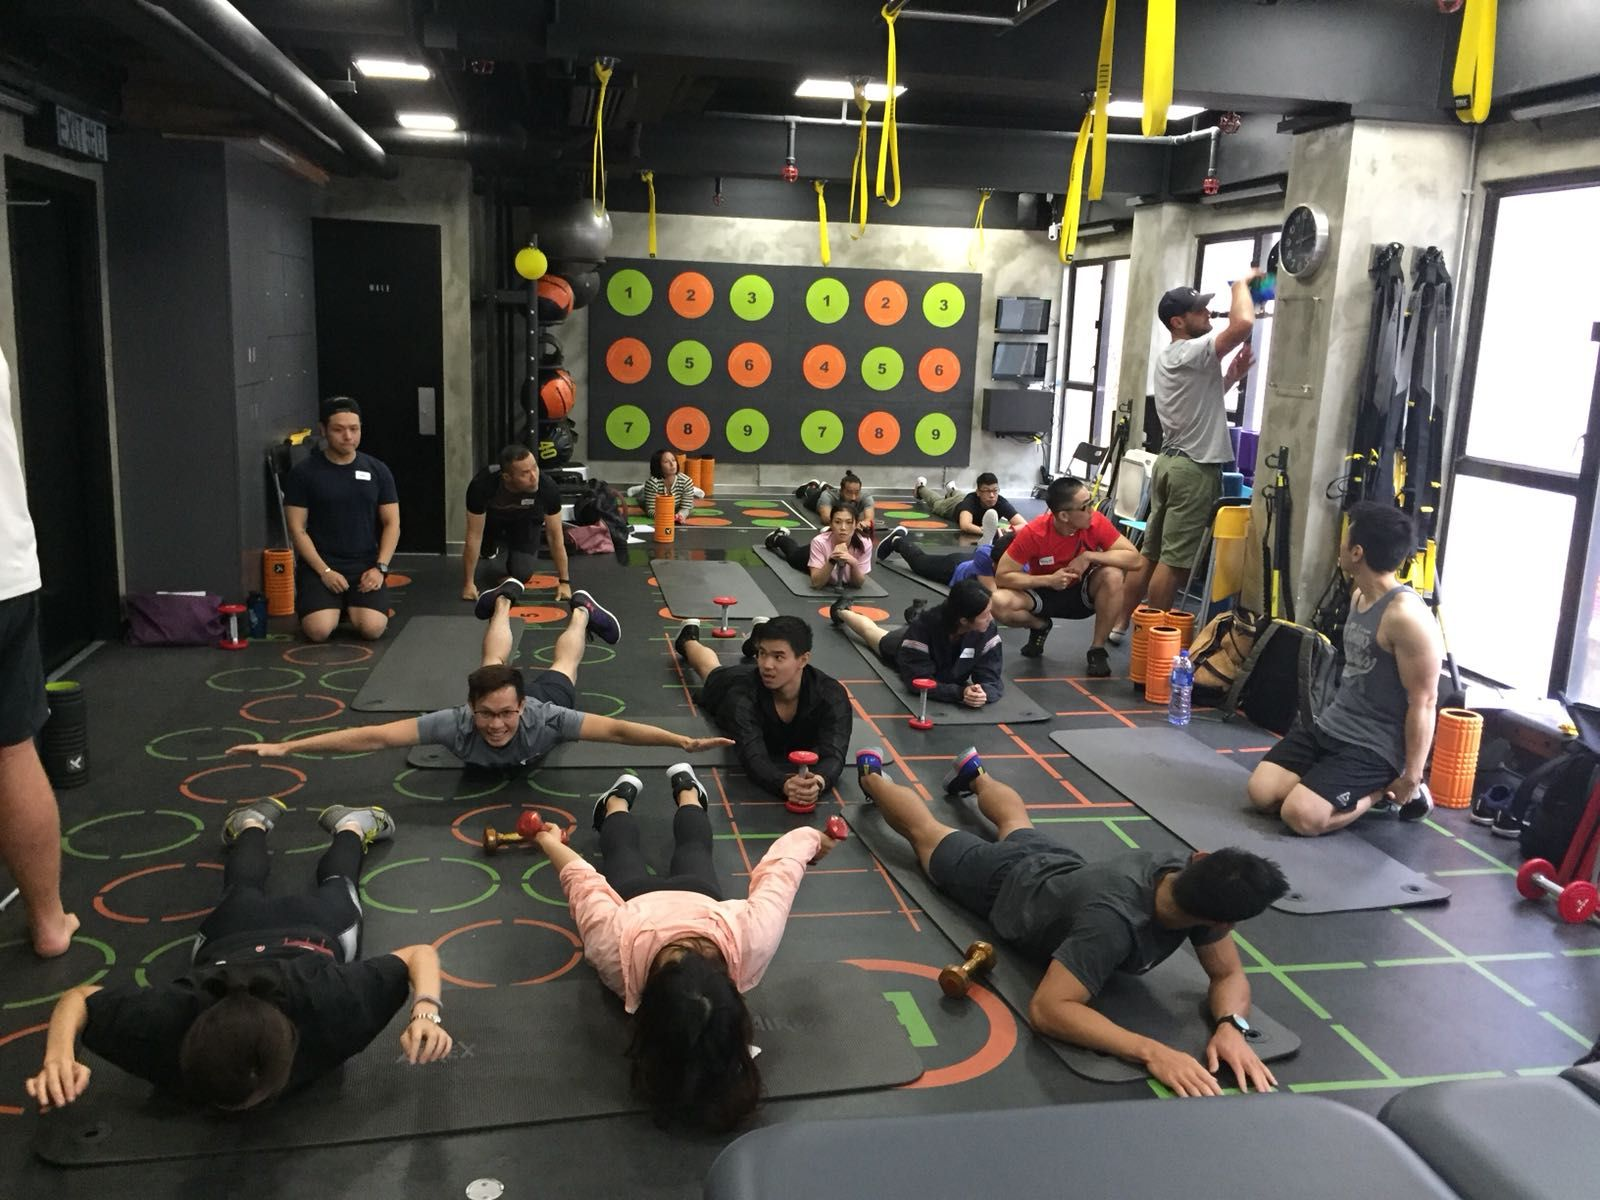 Swap Lunch For Sweat 10 Best Fitness Classes Under One Hour Hong Circuit Training Without Weights Photo Courtesy Of Optimum Performance Studio